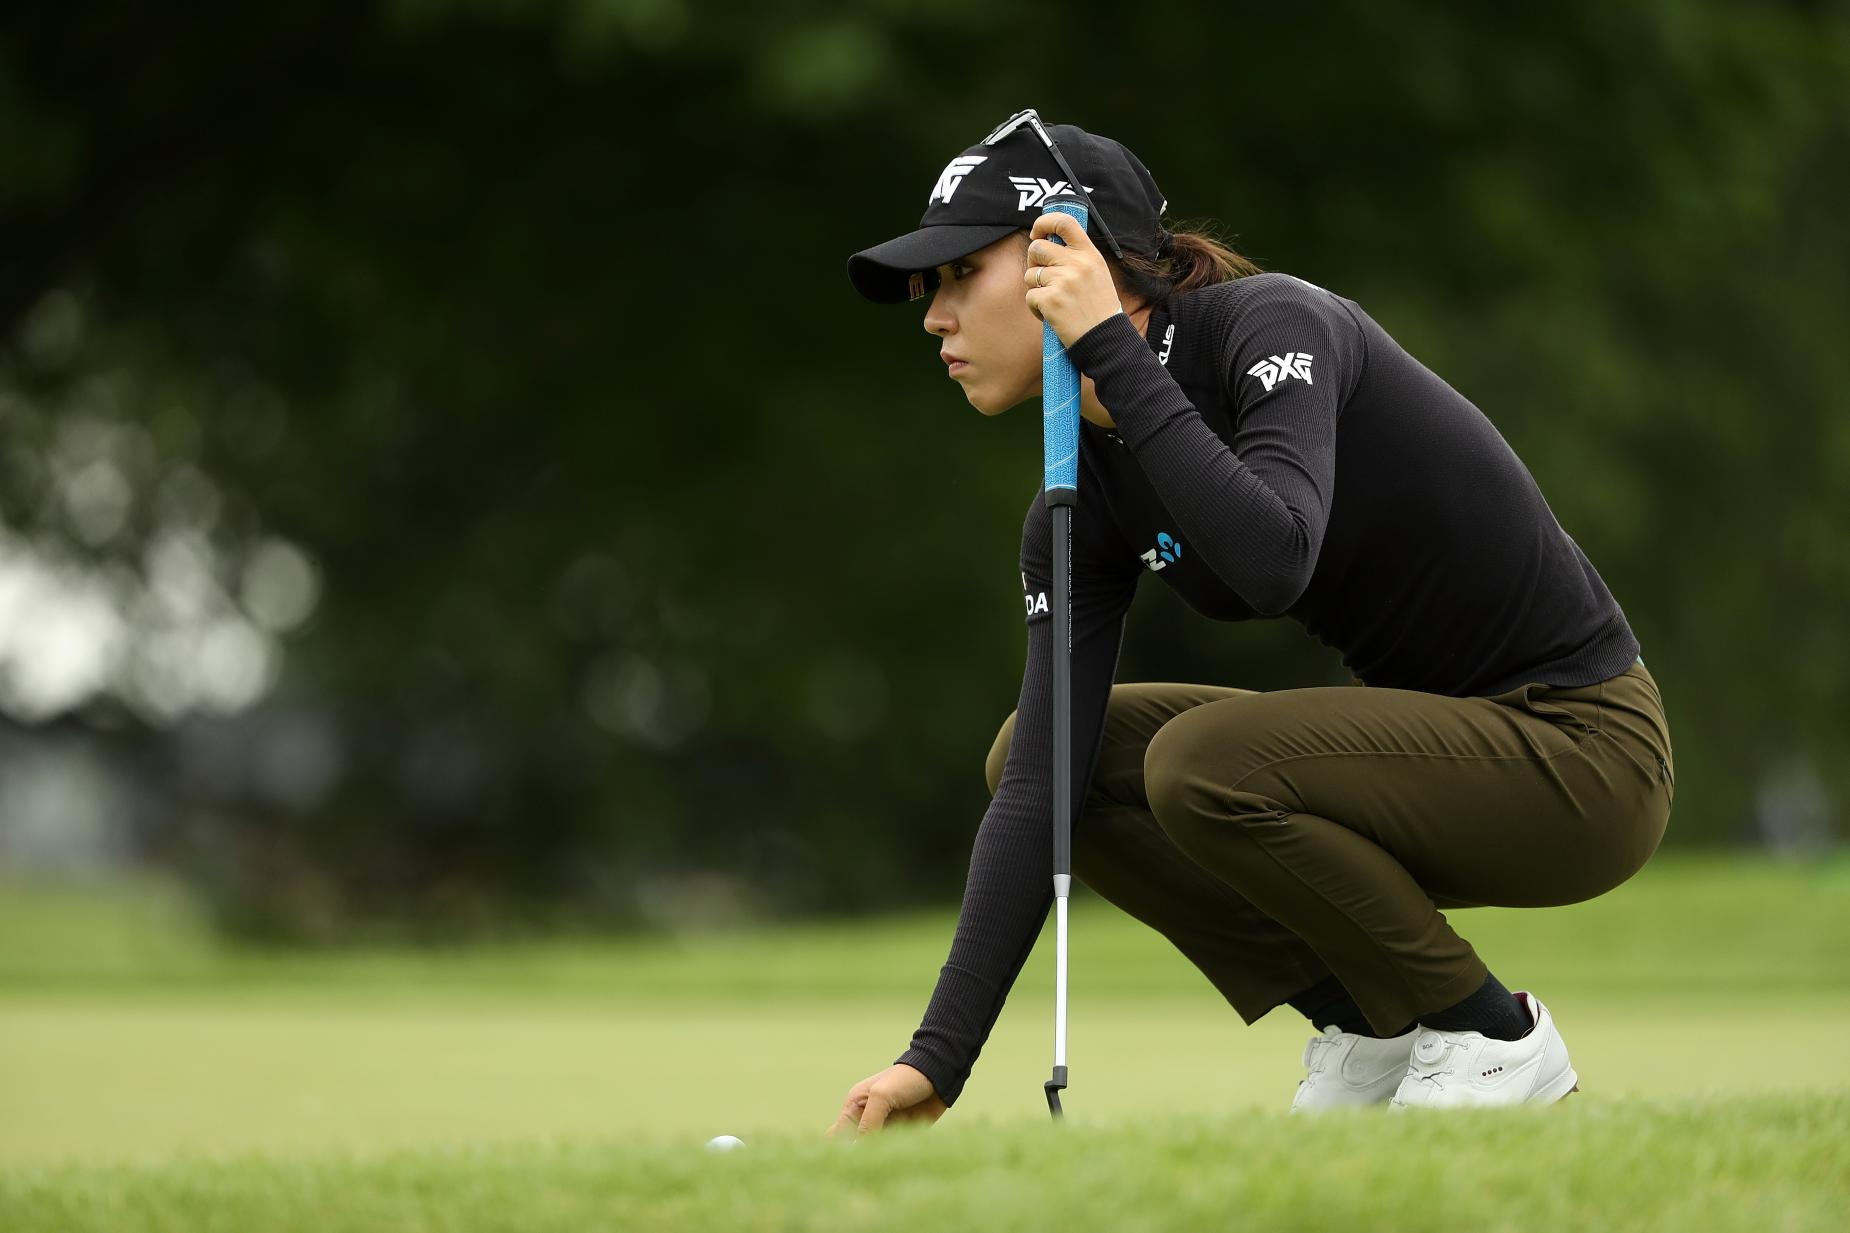 Aronimink Proves Tough Test On Day One At Women's PGA Championship